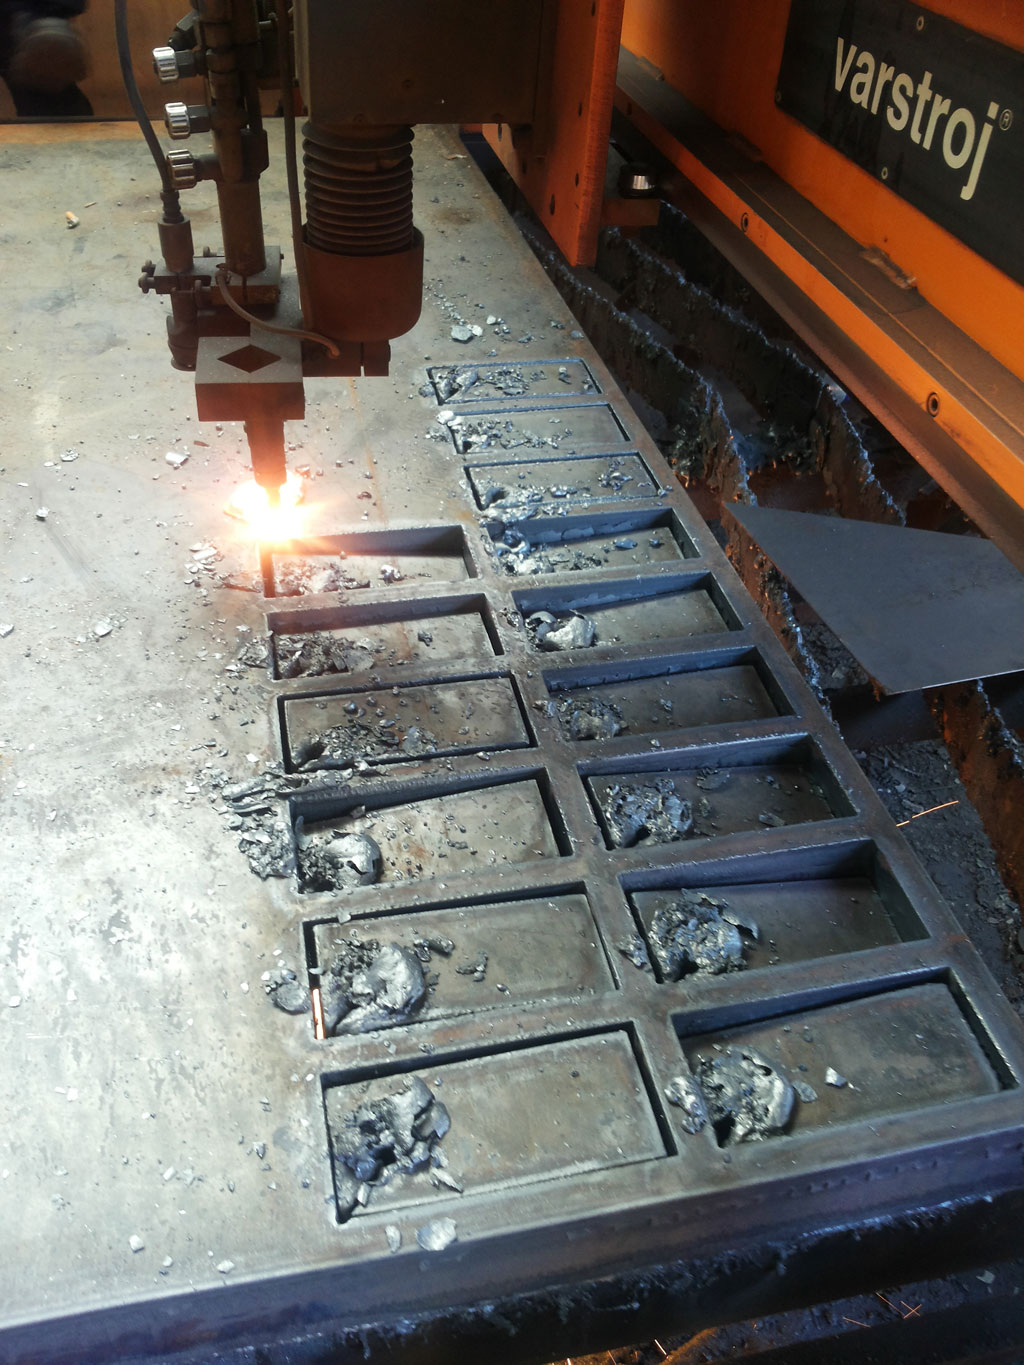 Cutting full steel molds